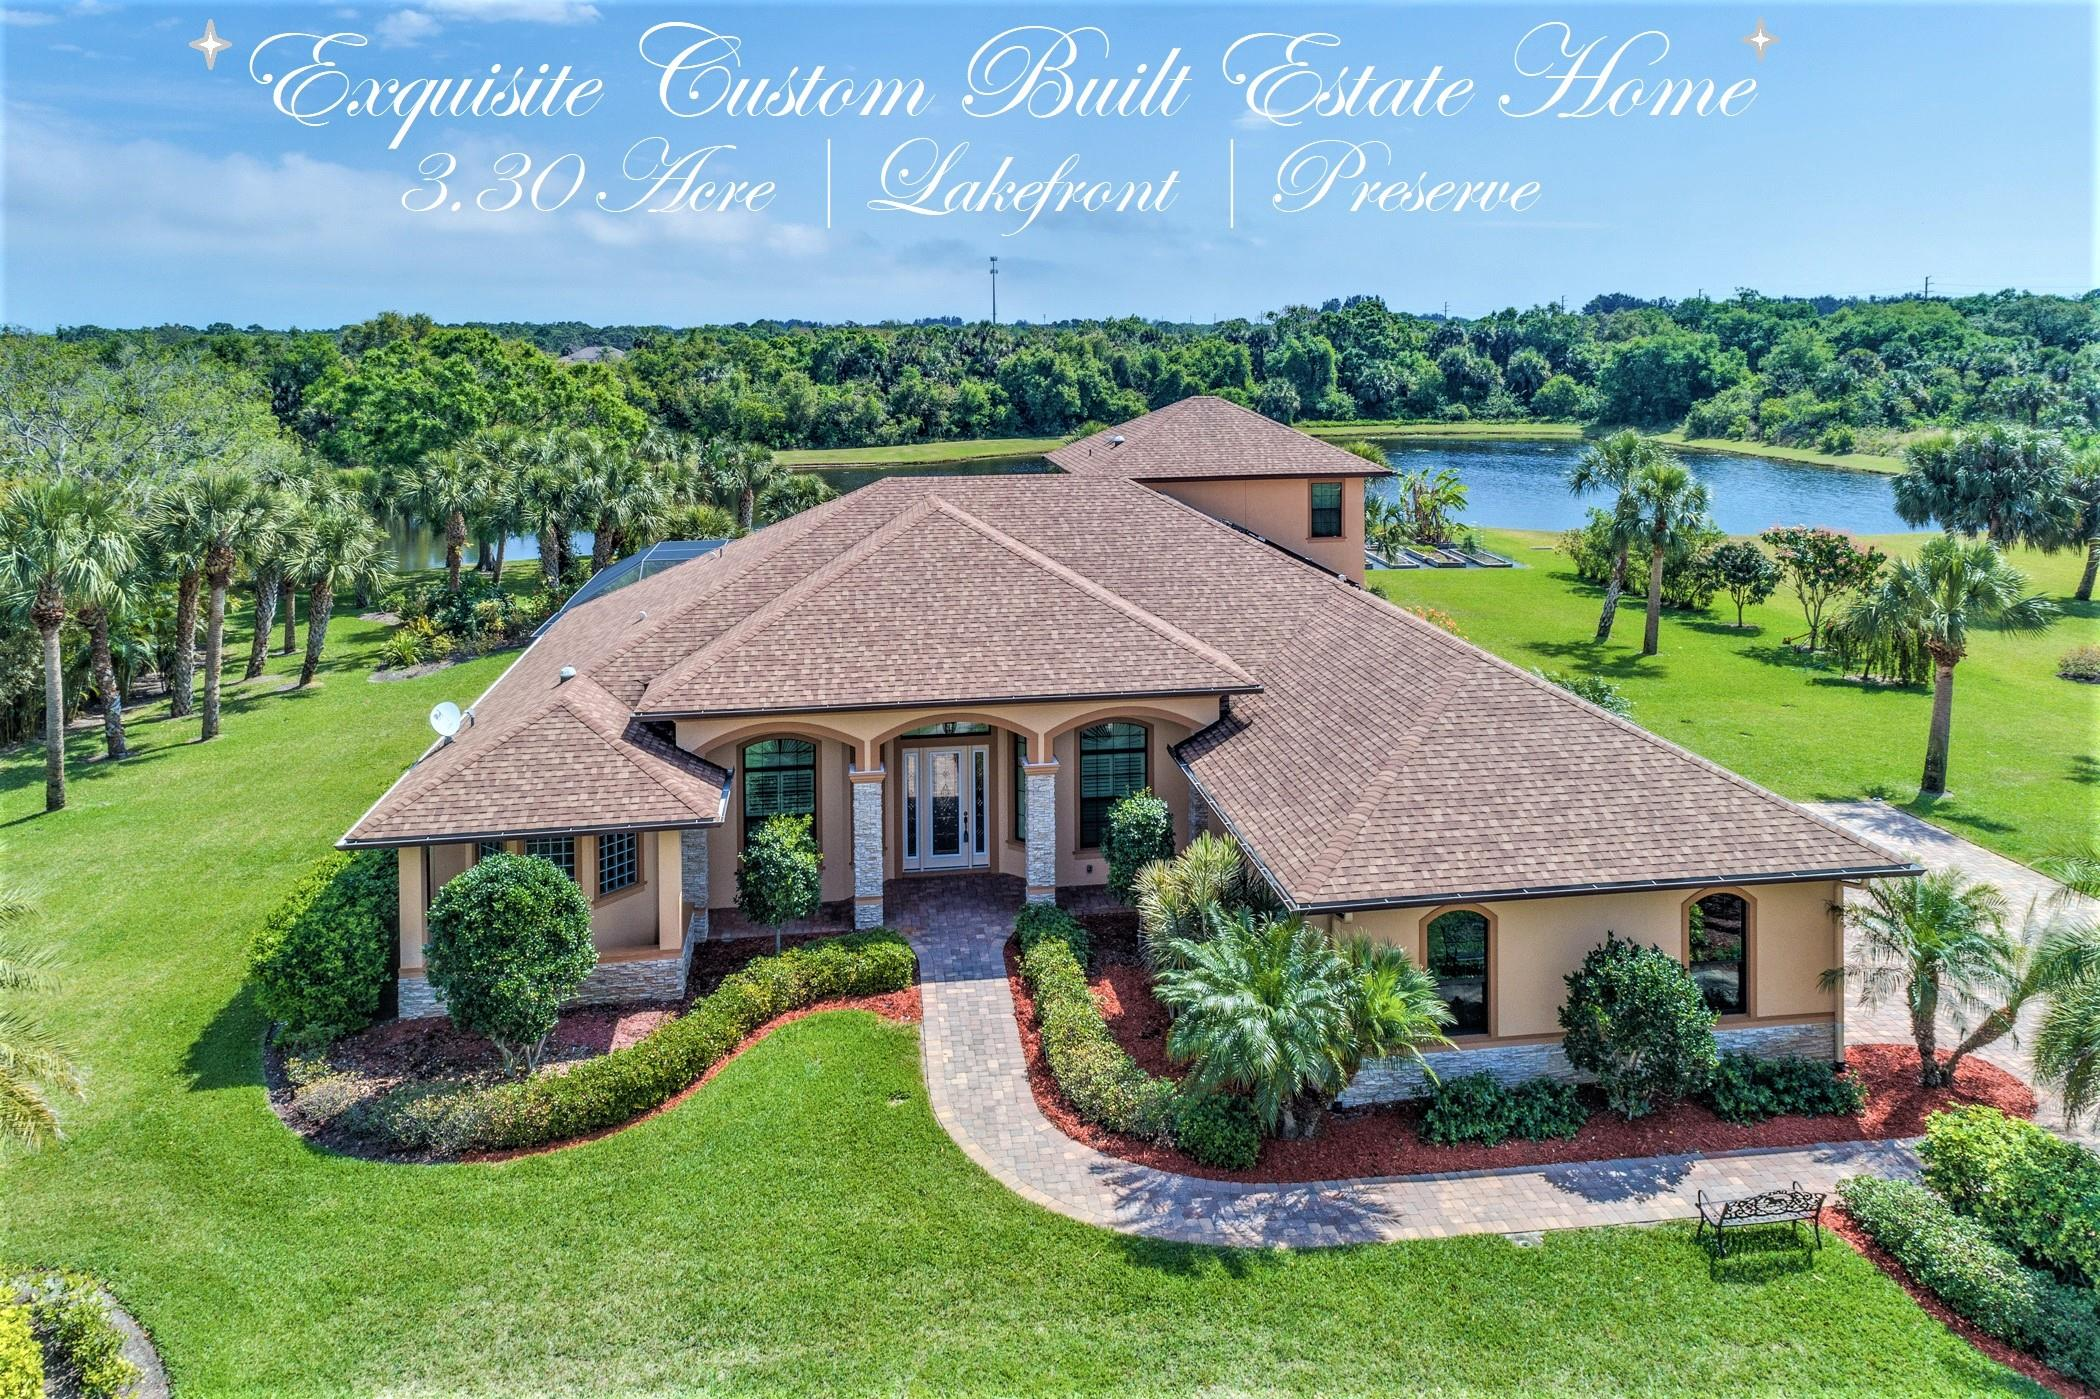 Melbourne Florida Real Estate   Brevard County   Waterfront   Luxury Homes    Beaches